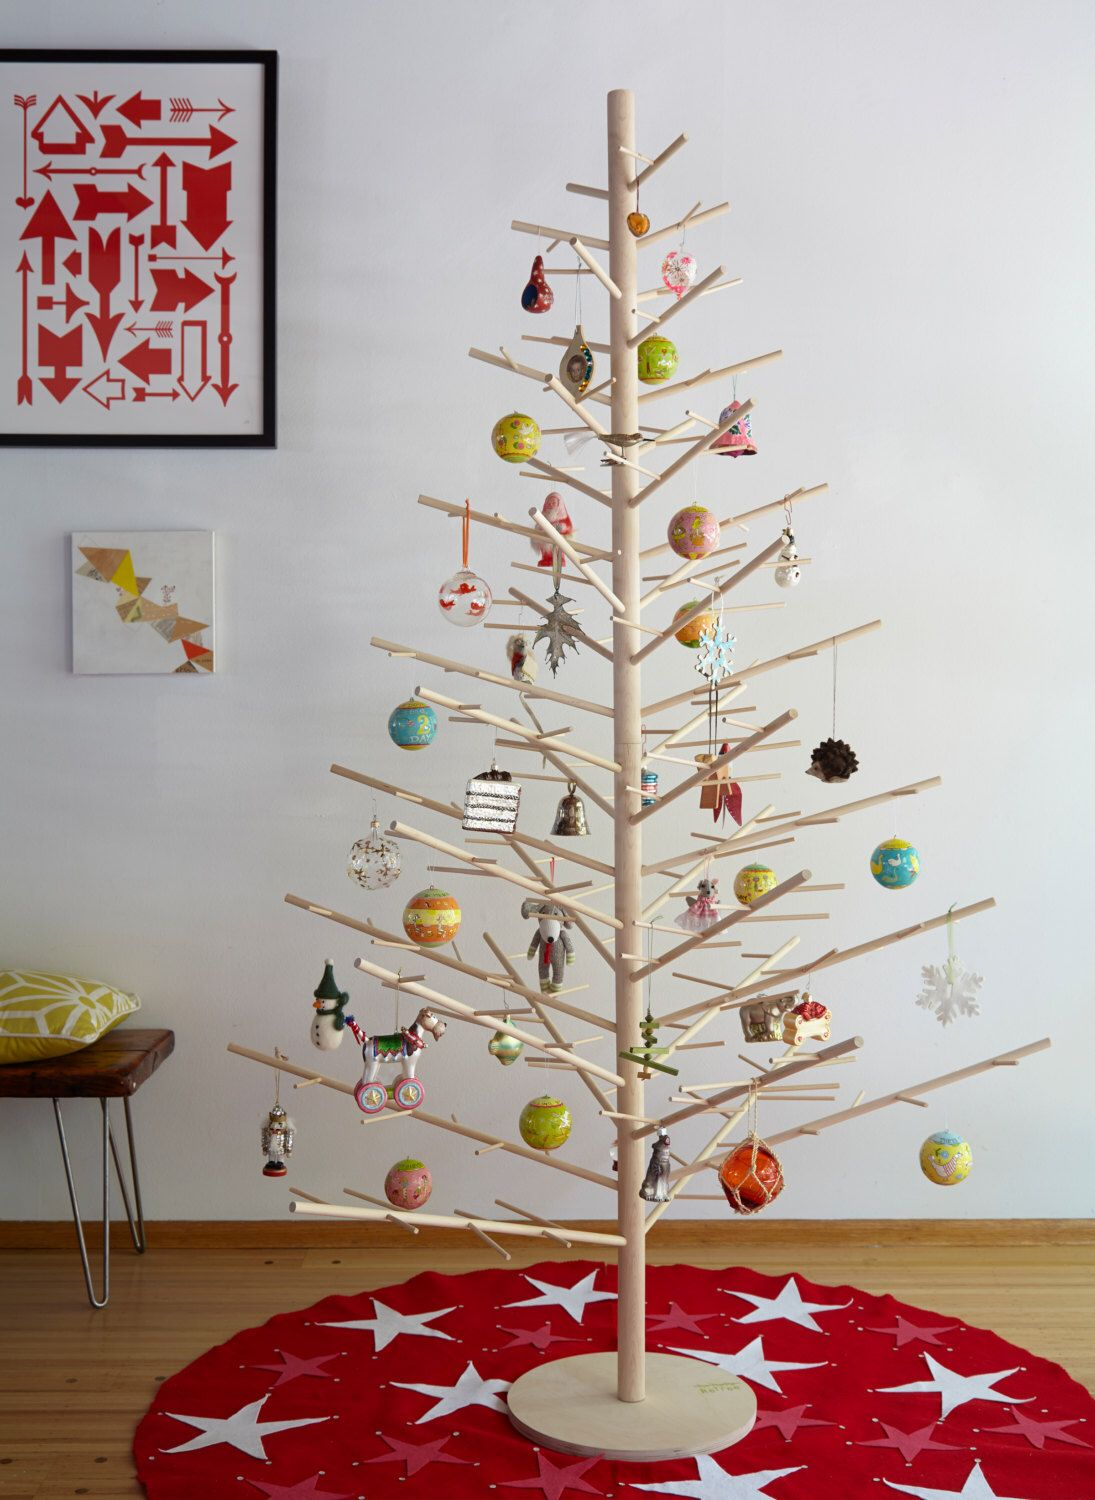 Wonderful Wood Christmas Trees By ReTreeJoy! 6ft Tall, Handmade In The USA, Modern,  Reusable Wood Holiday Trees Are JOYFUL + Easy And Fun To Assemble!